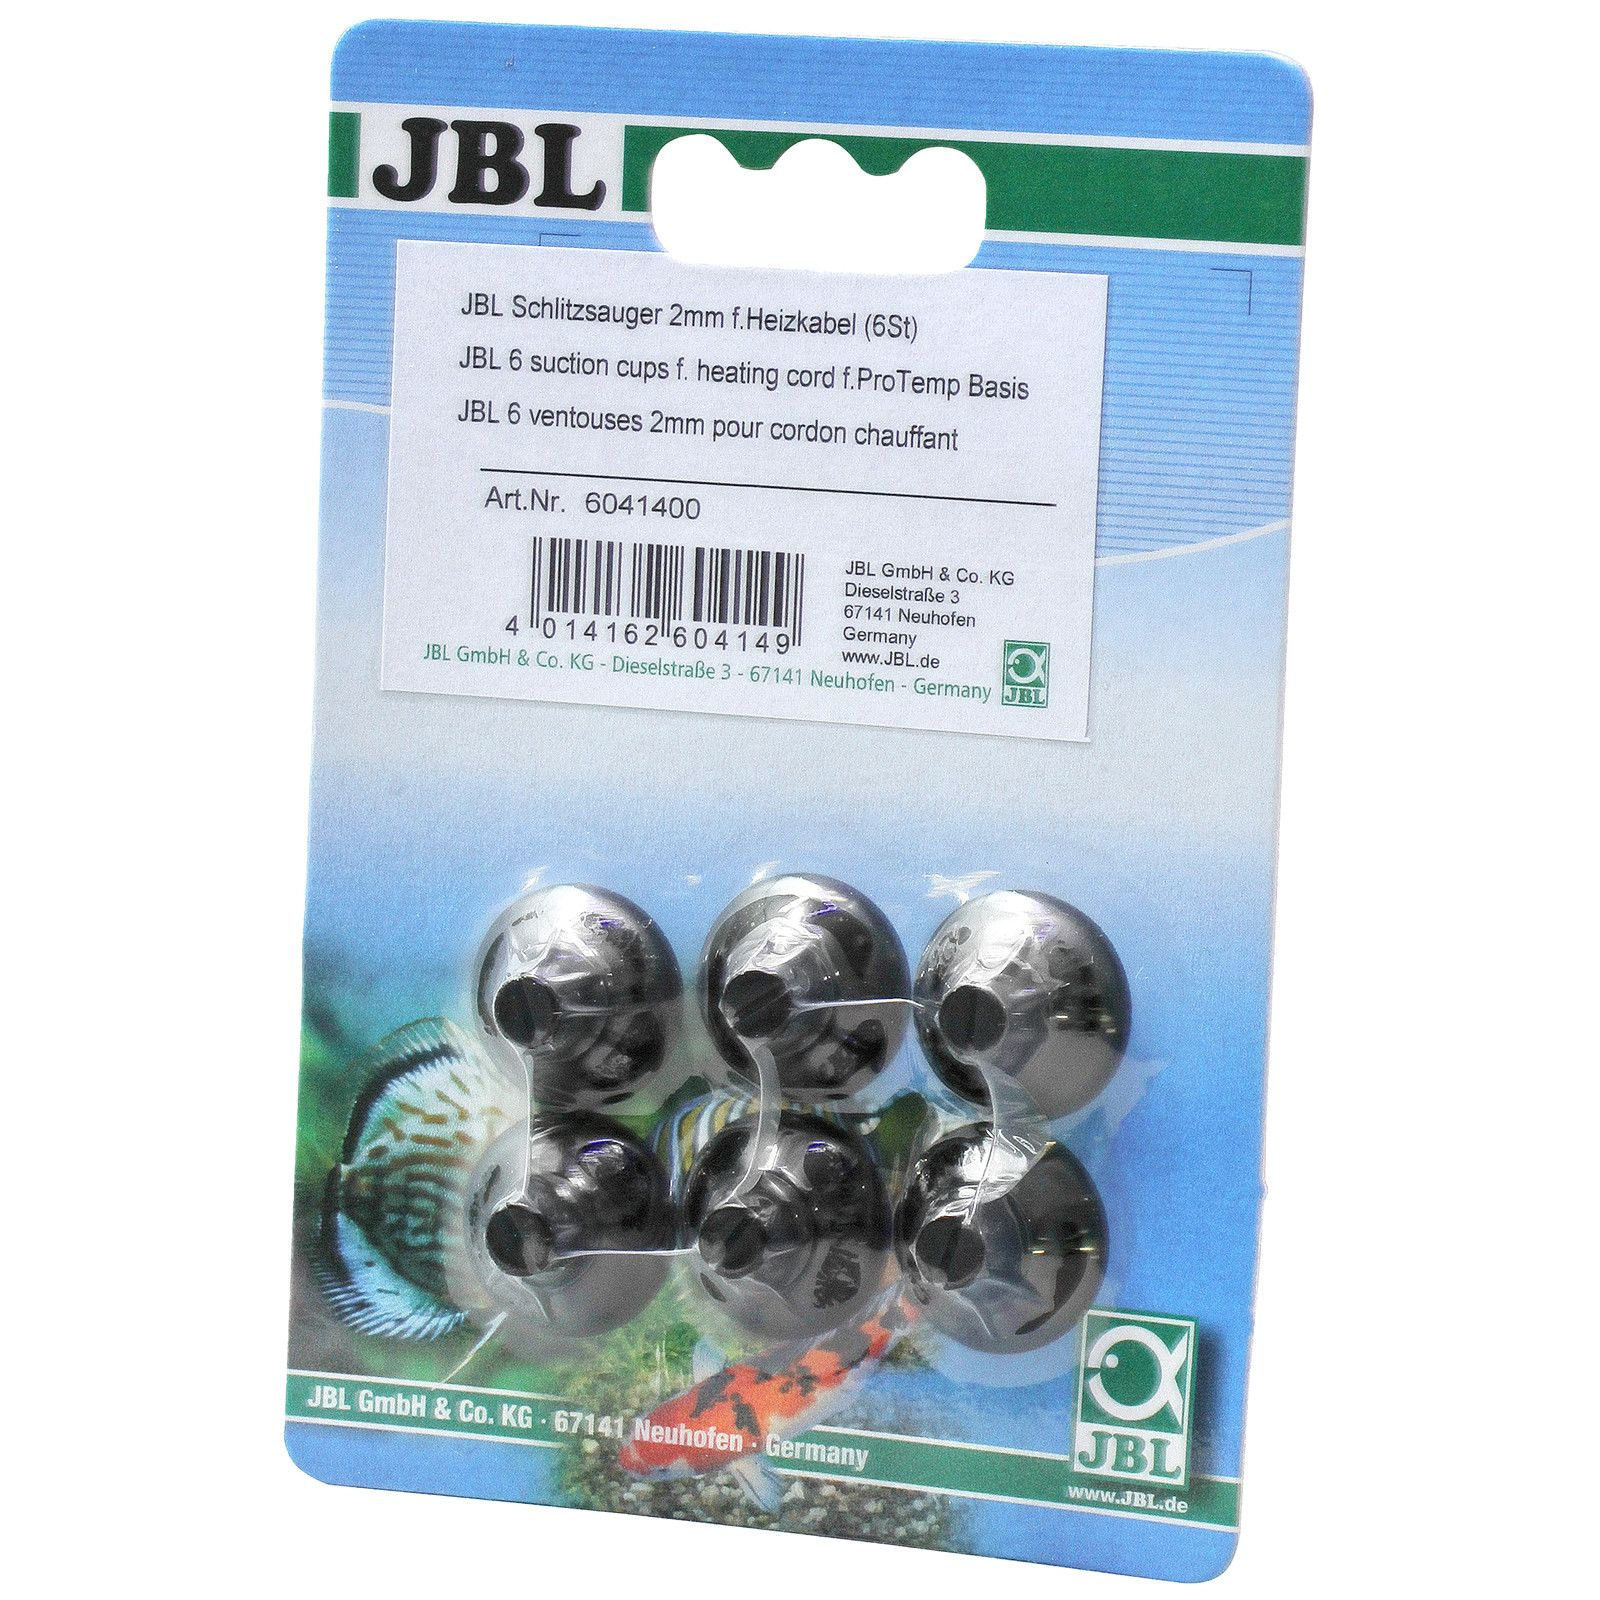 JBL - Slit suction cup for heat cables and temperature sensor - 6x